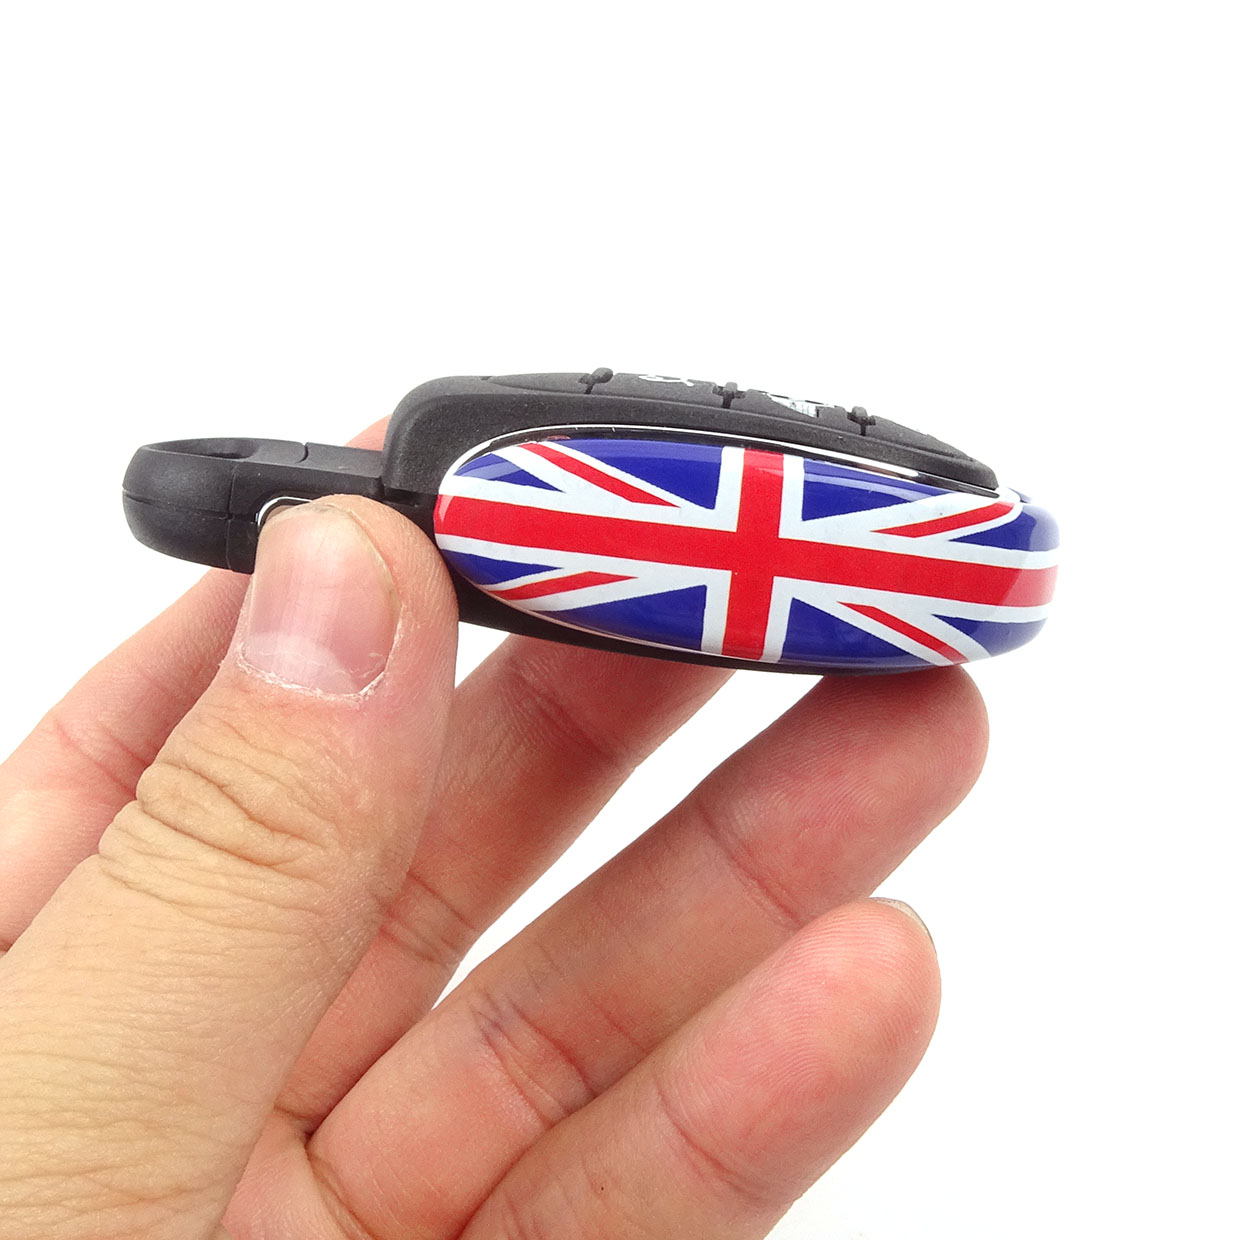 Union Jack Car Styling Key Bag Decoration Key Chain Case Housing Cover Protector For Mini Cooper S F54 F55 F56 F60 Accessories